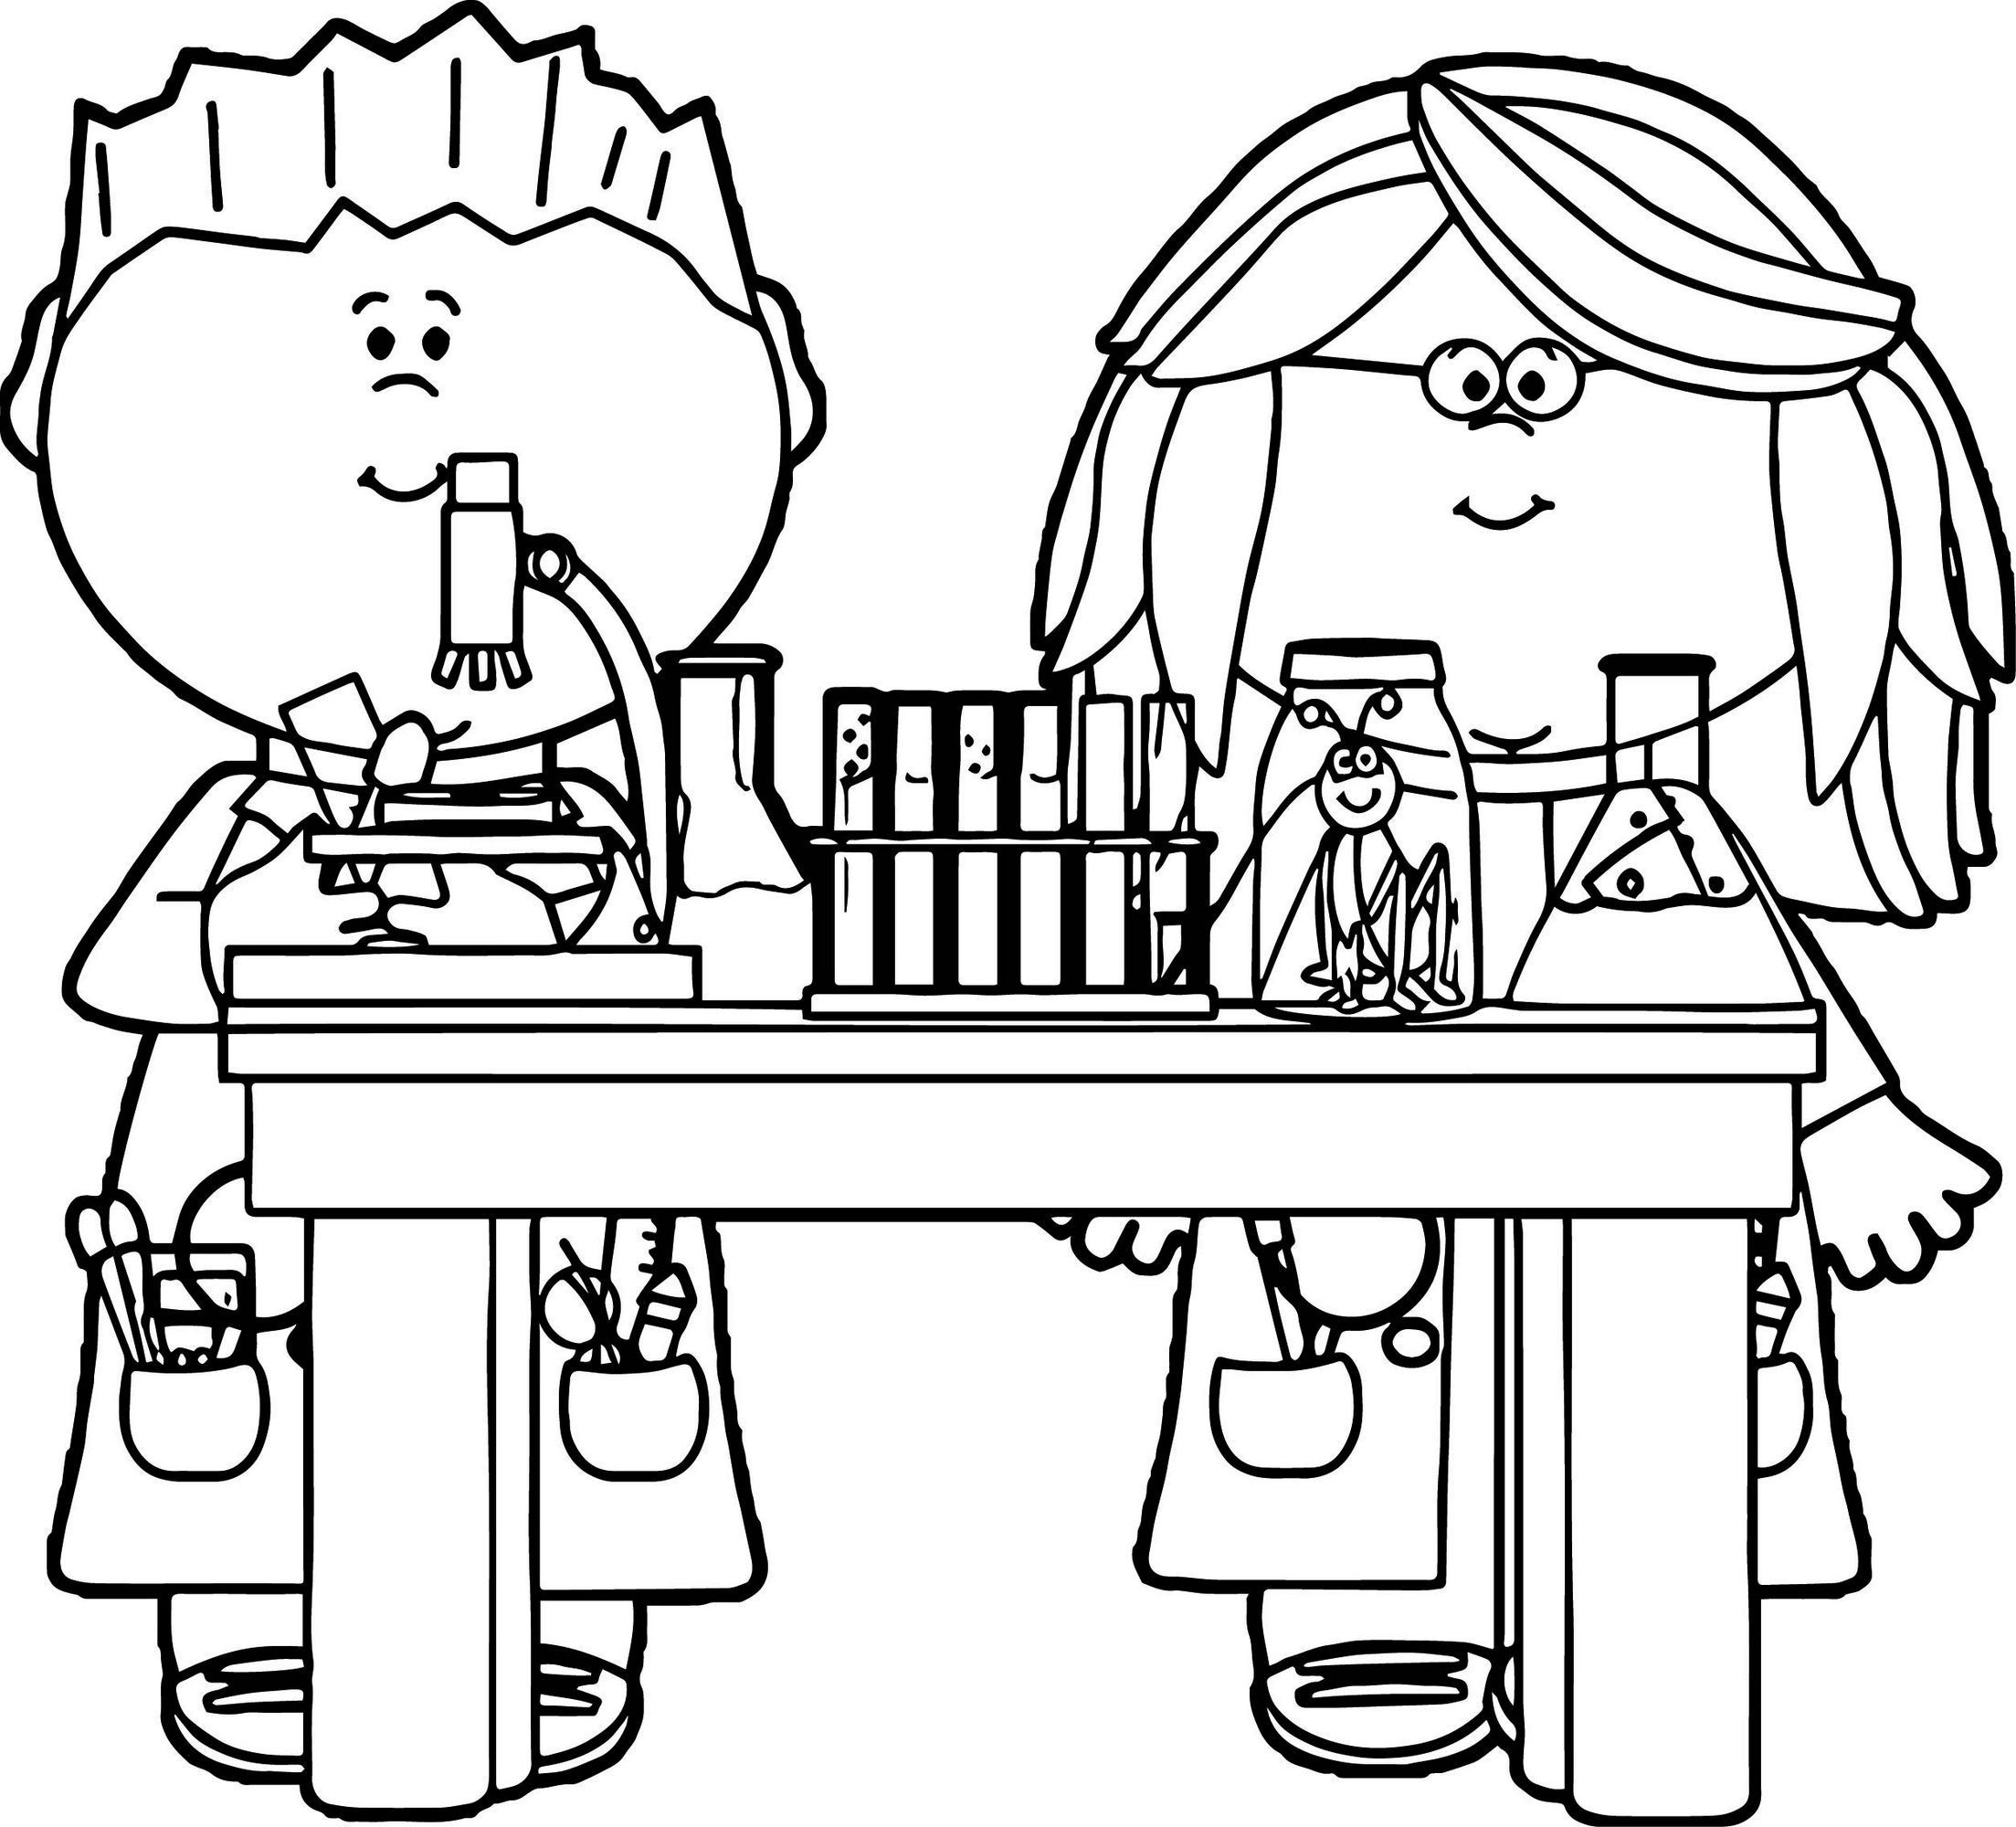 Kids In Science Class Coloring Page Printable Profession